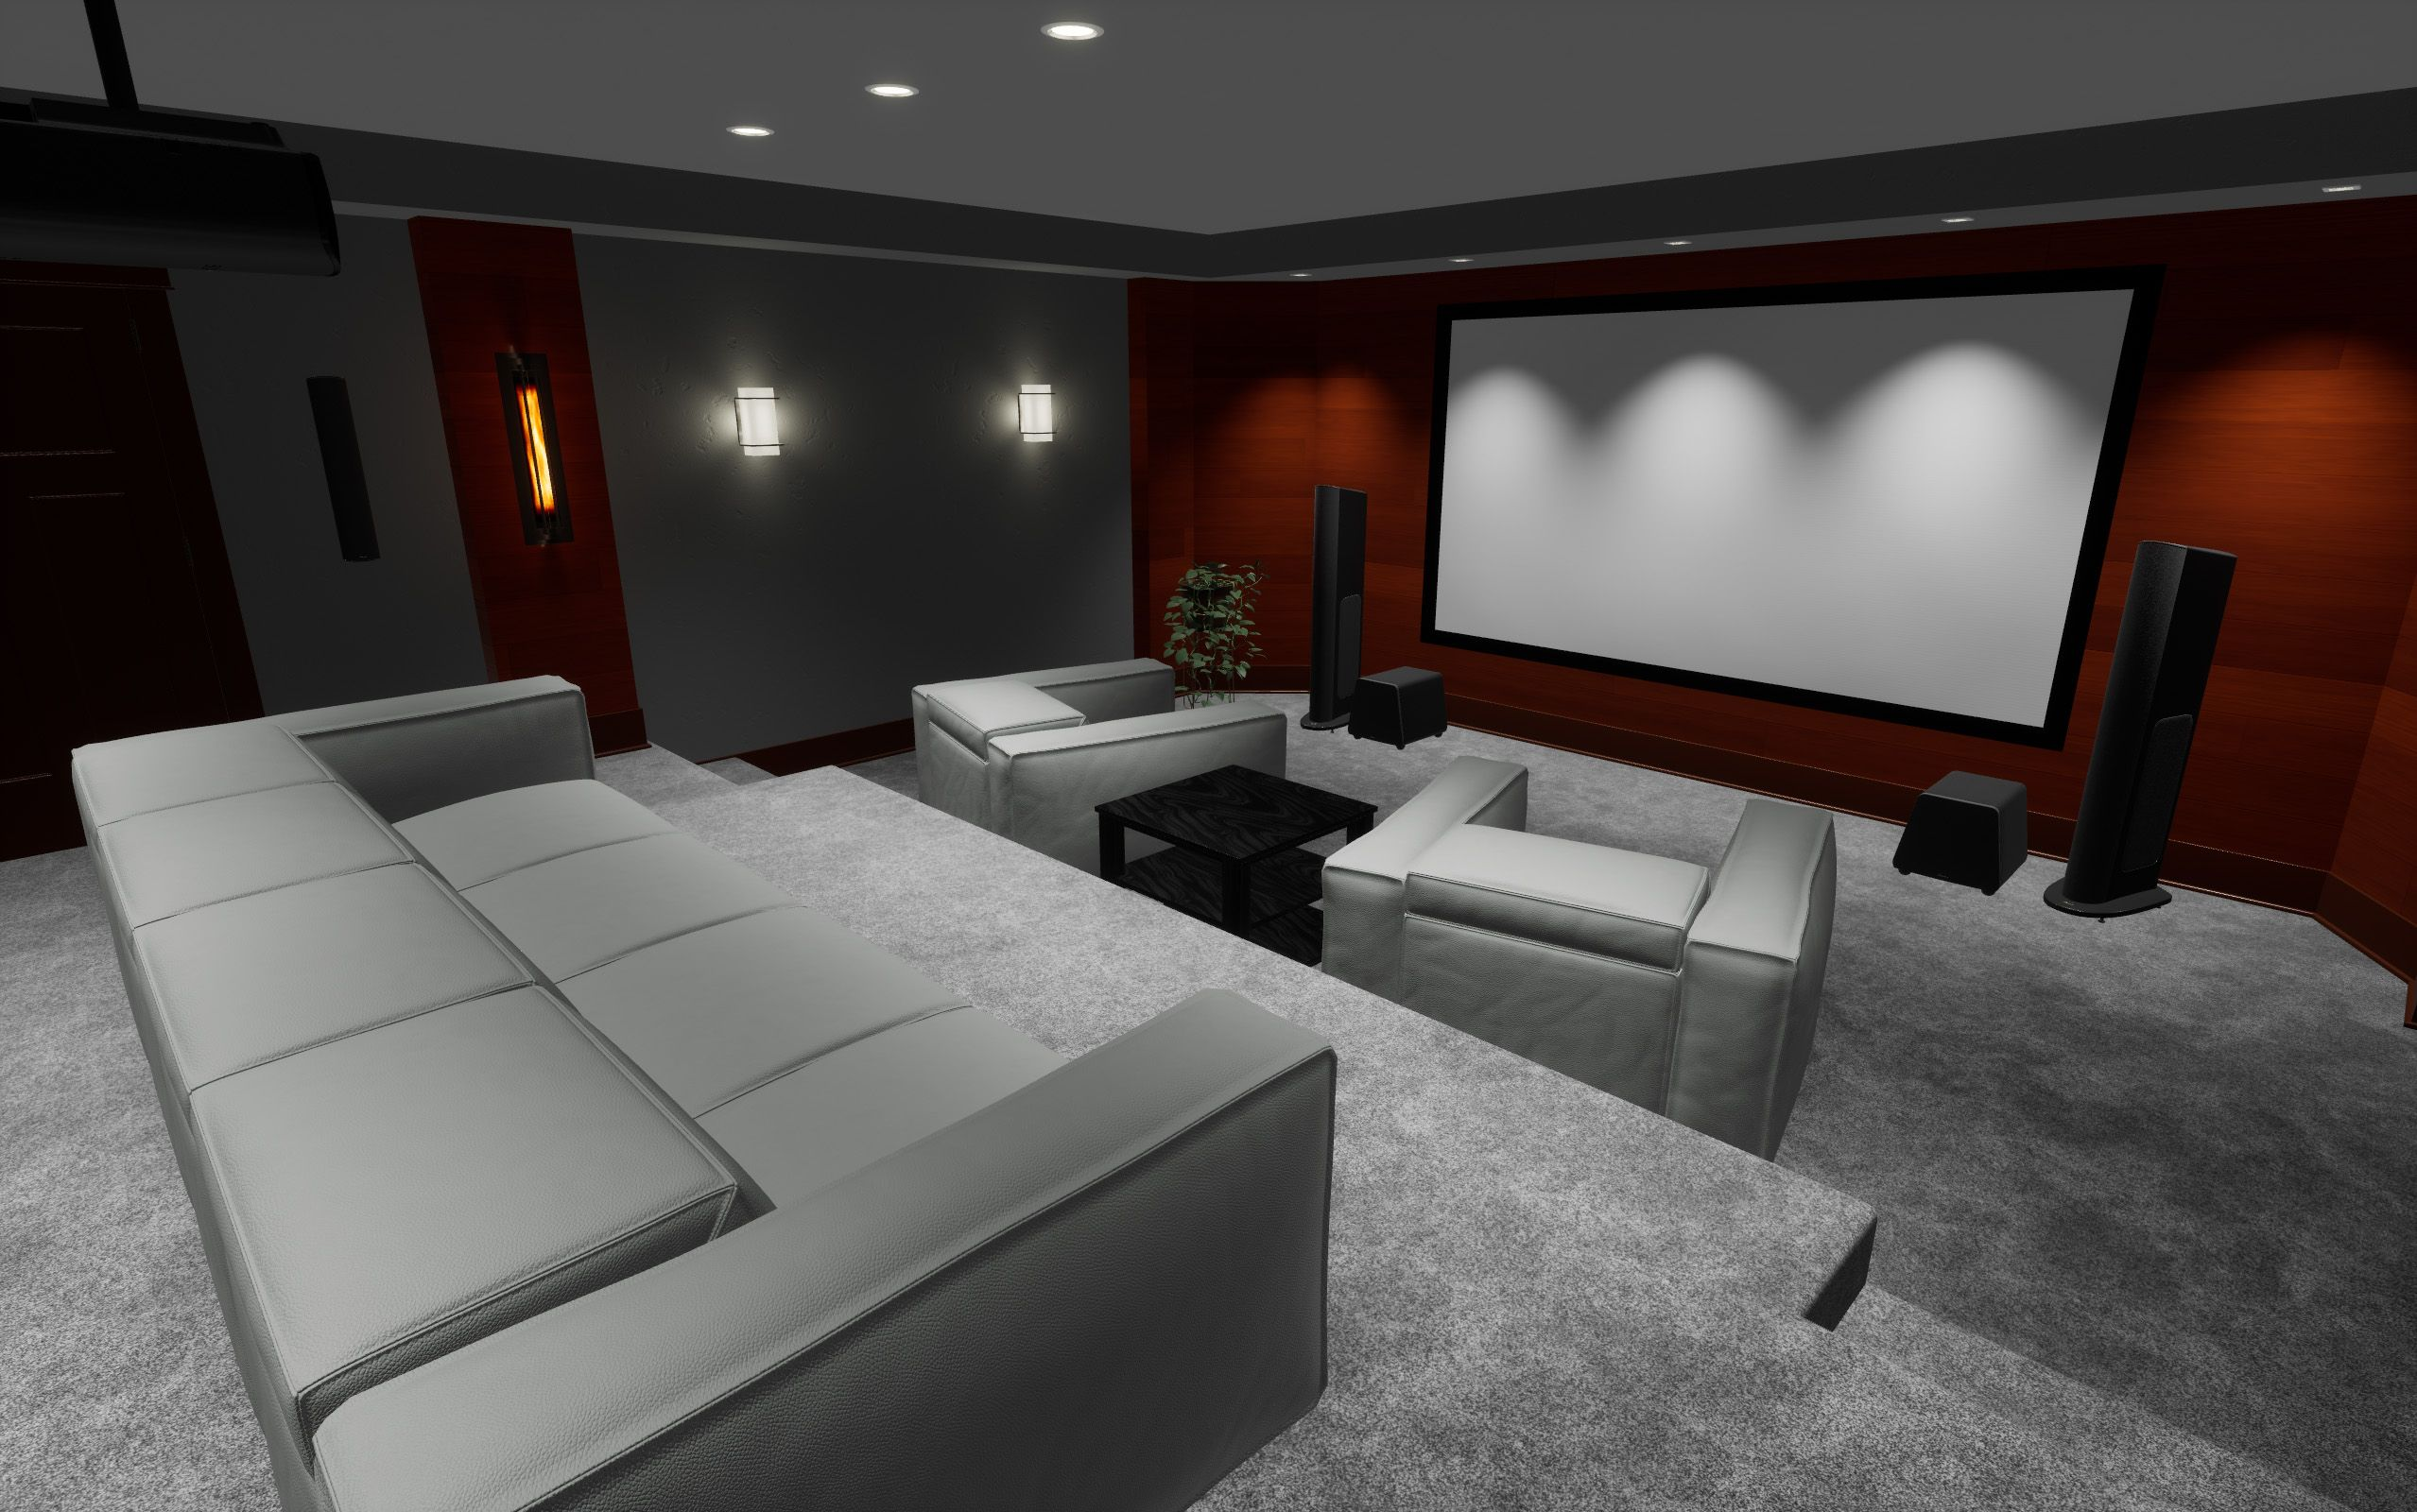 Home Theater Seating Park City, Smart Home Automation, Virtual Reality, Interior Design